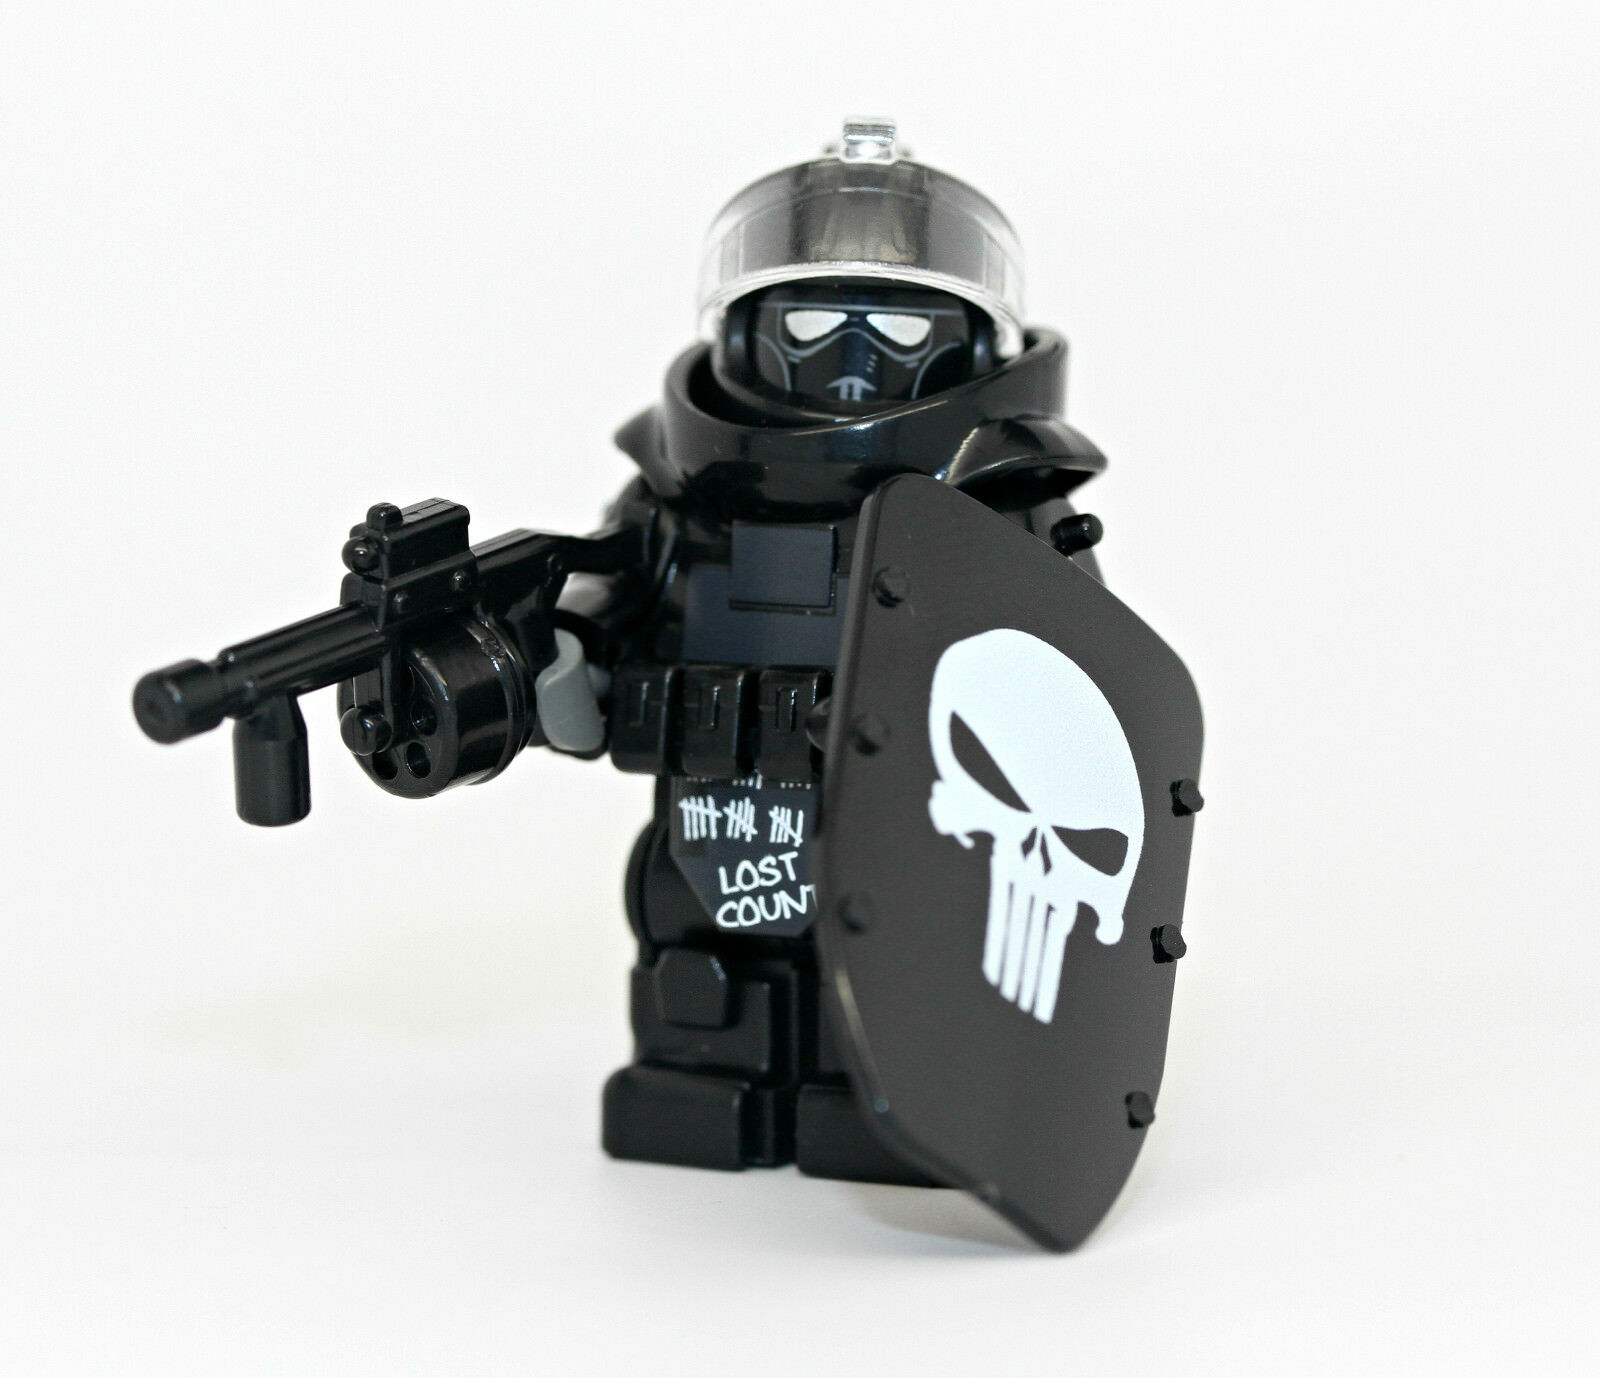 Call Of Duty Juggernaut Skull Armored Assault Minifigure Made With Real Lego For Sale Online